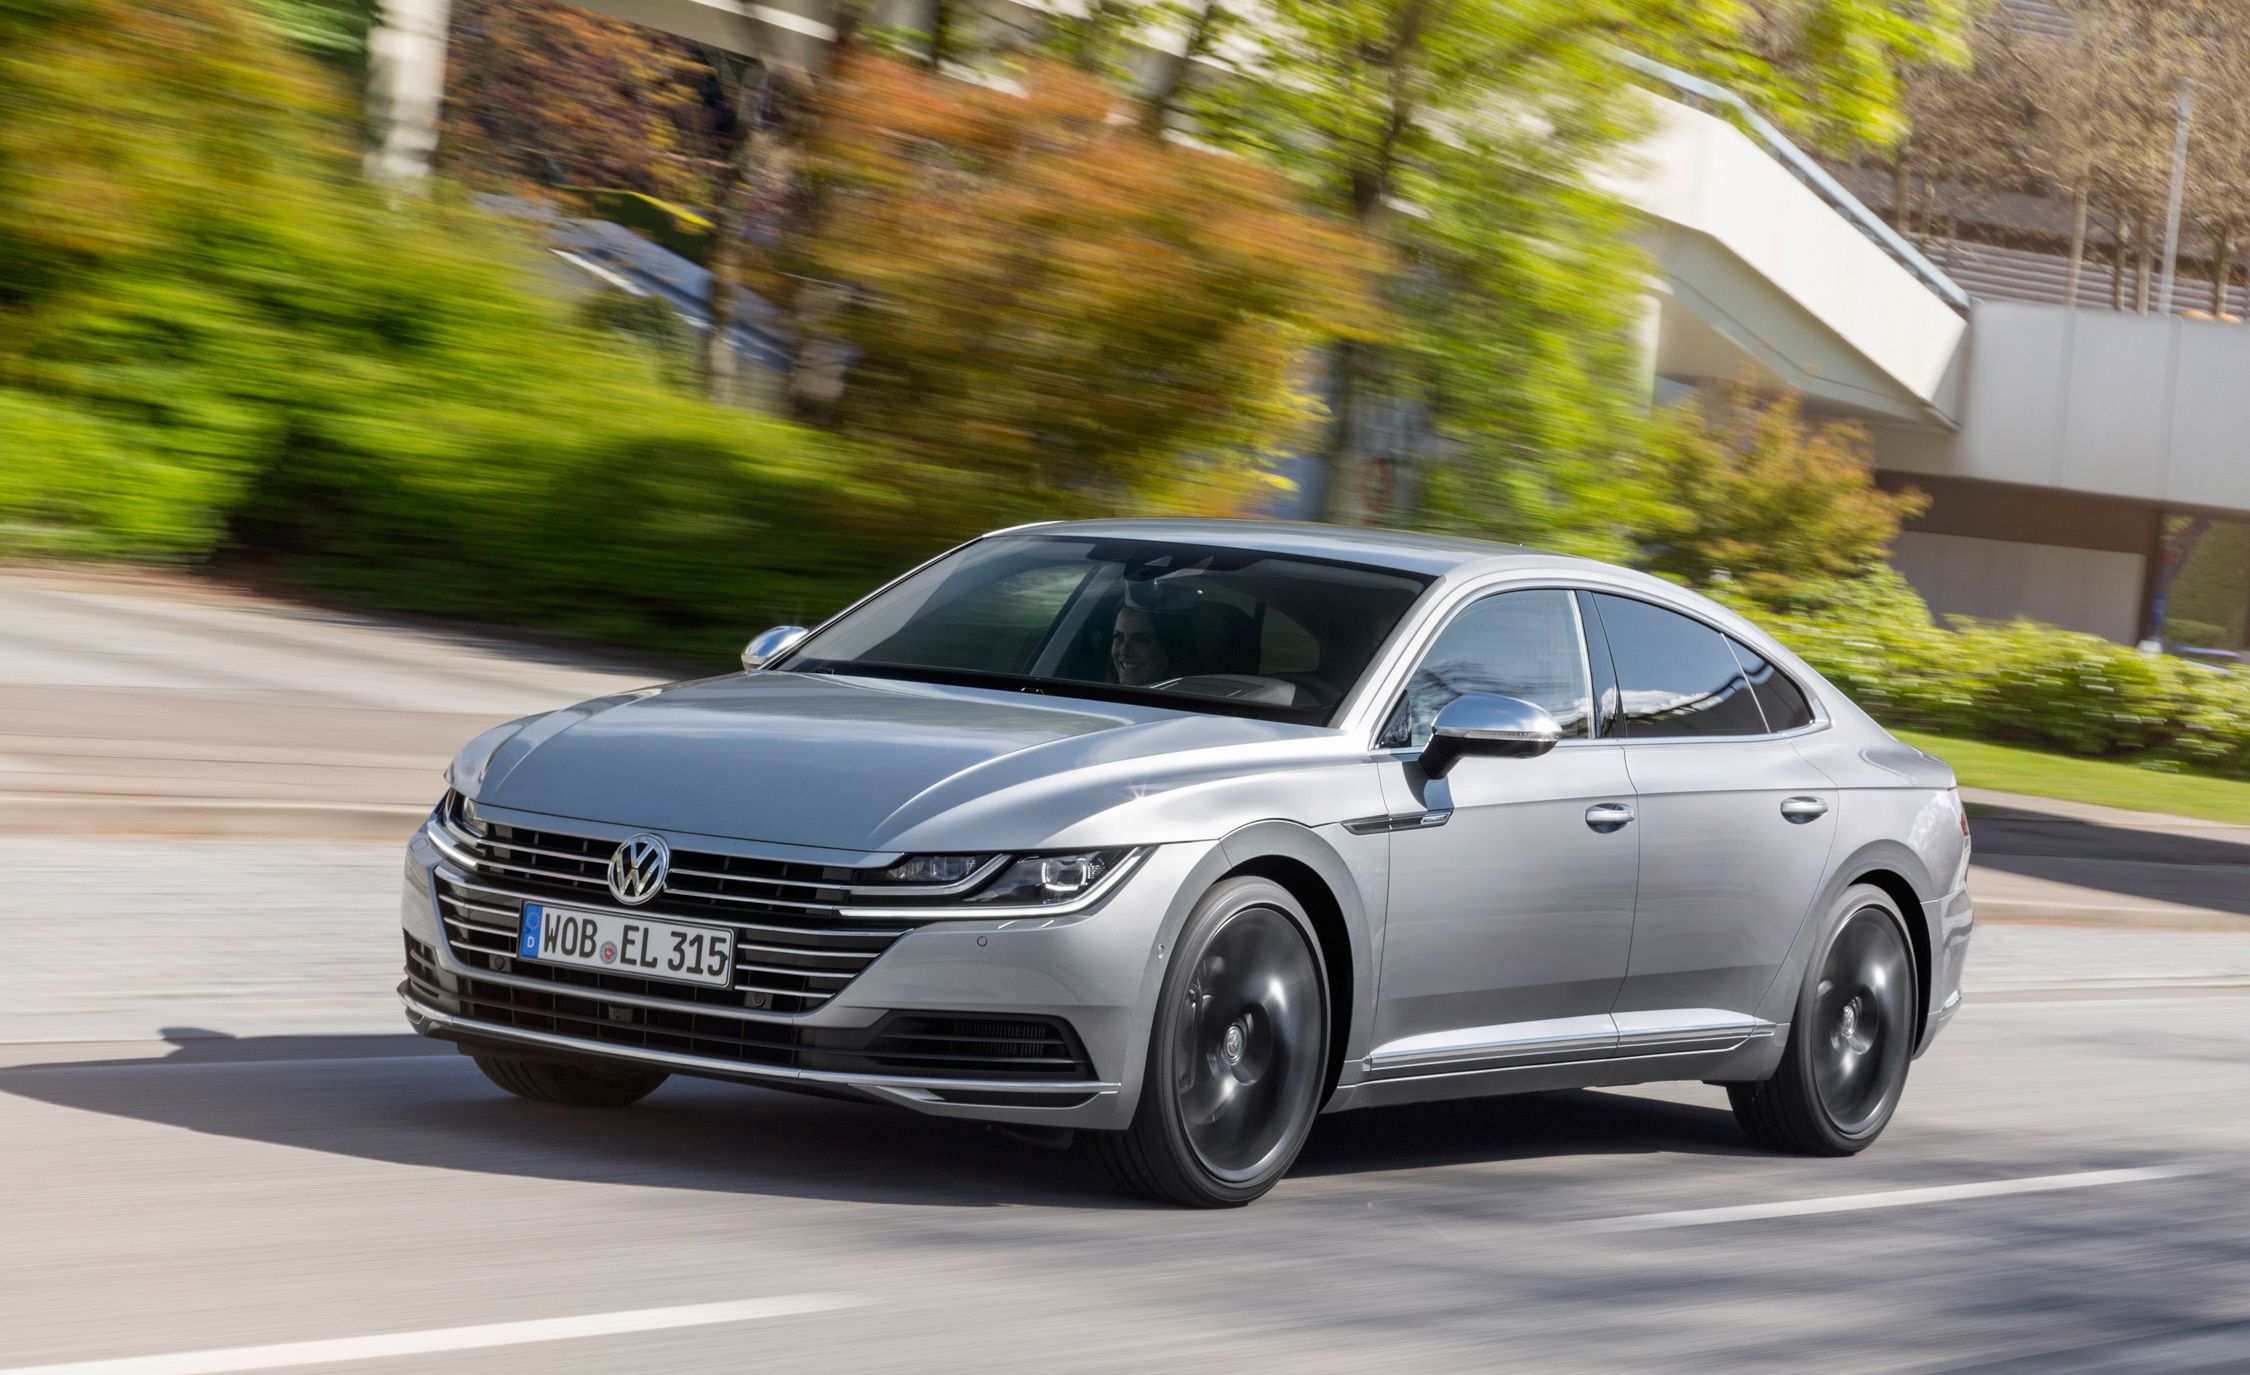 74 Great Arteon Vw 2019 Reviews by Arteon Vw 2019